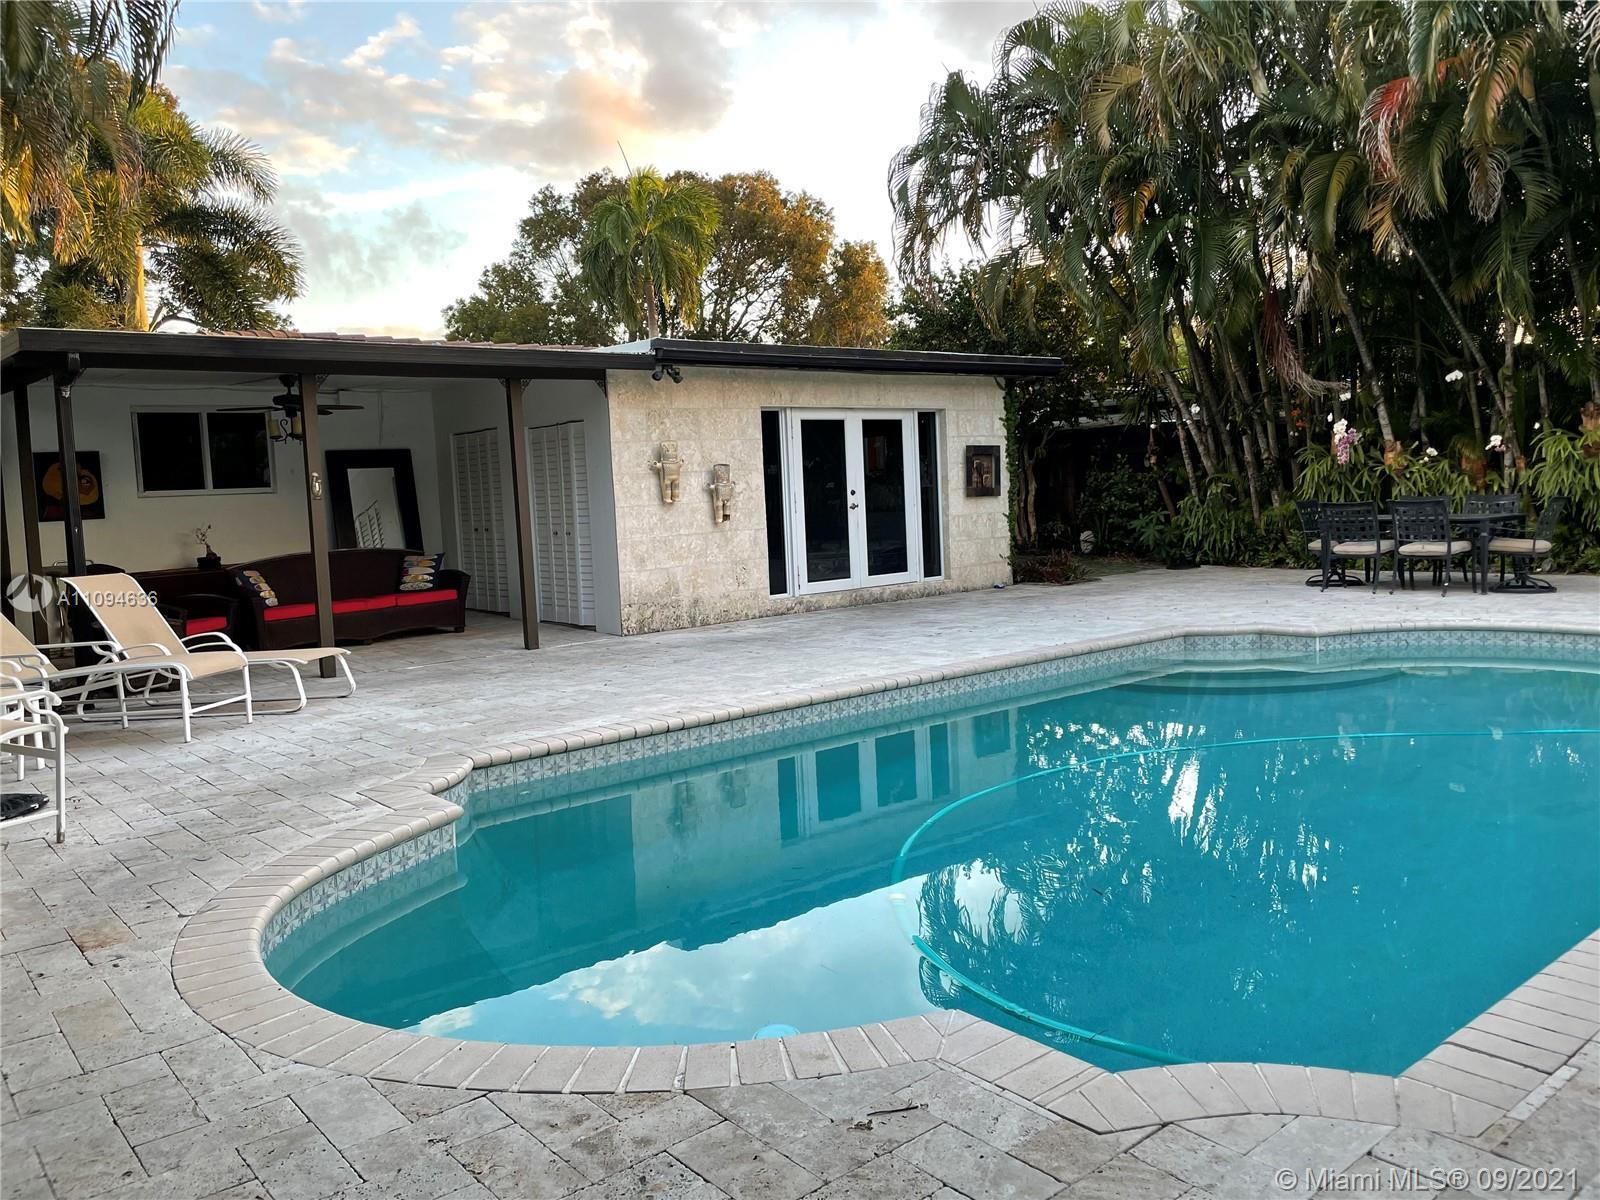 This can be your new dream home! 4 bedroom, 2 bath split plan Total living SqFt:¤1,829 with huge swi